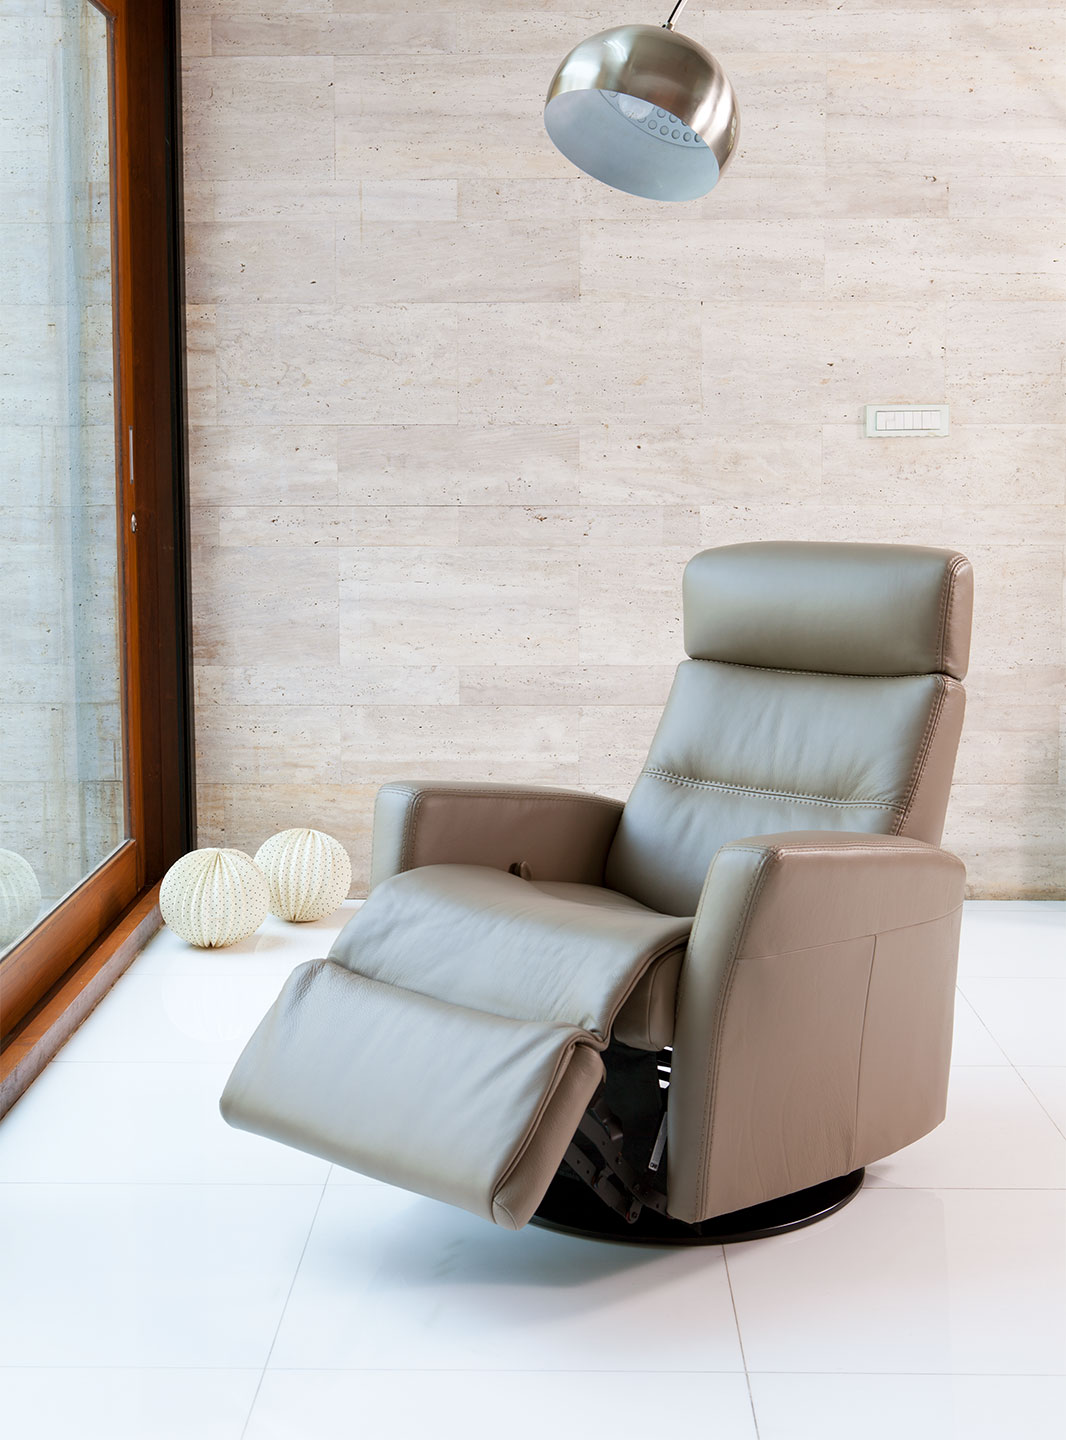 Fauteuil Inclinable Design Fauteuil Inclinable Divani Mariette Clermont